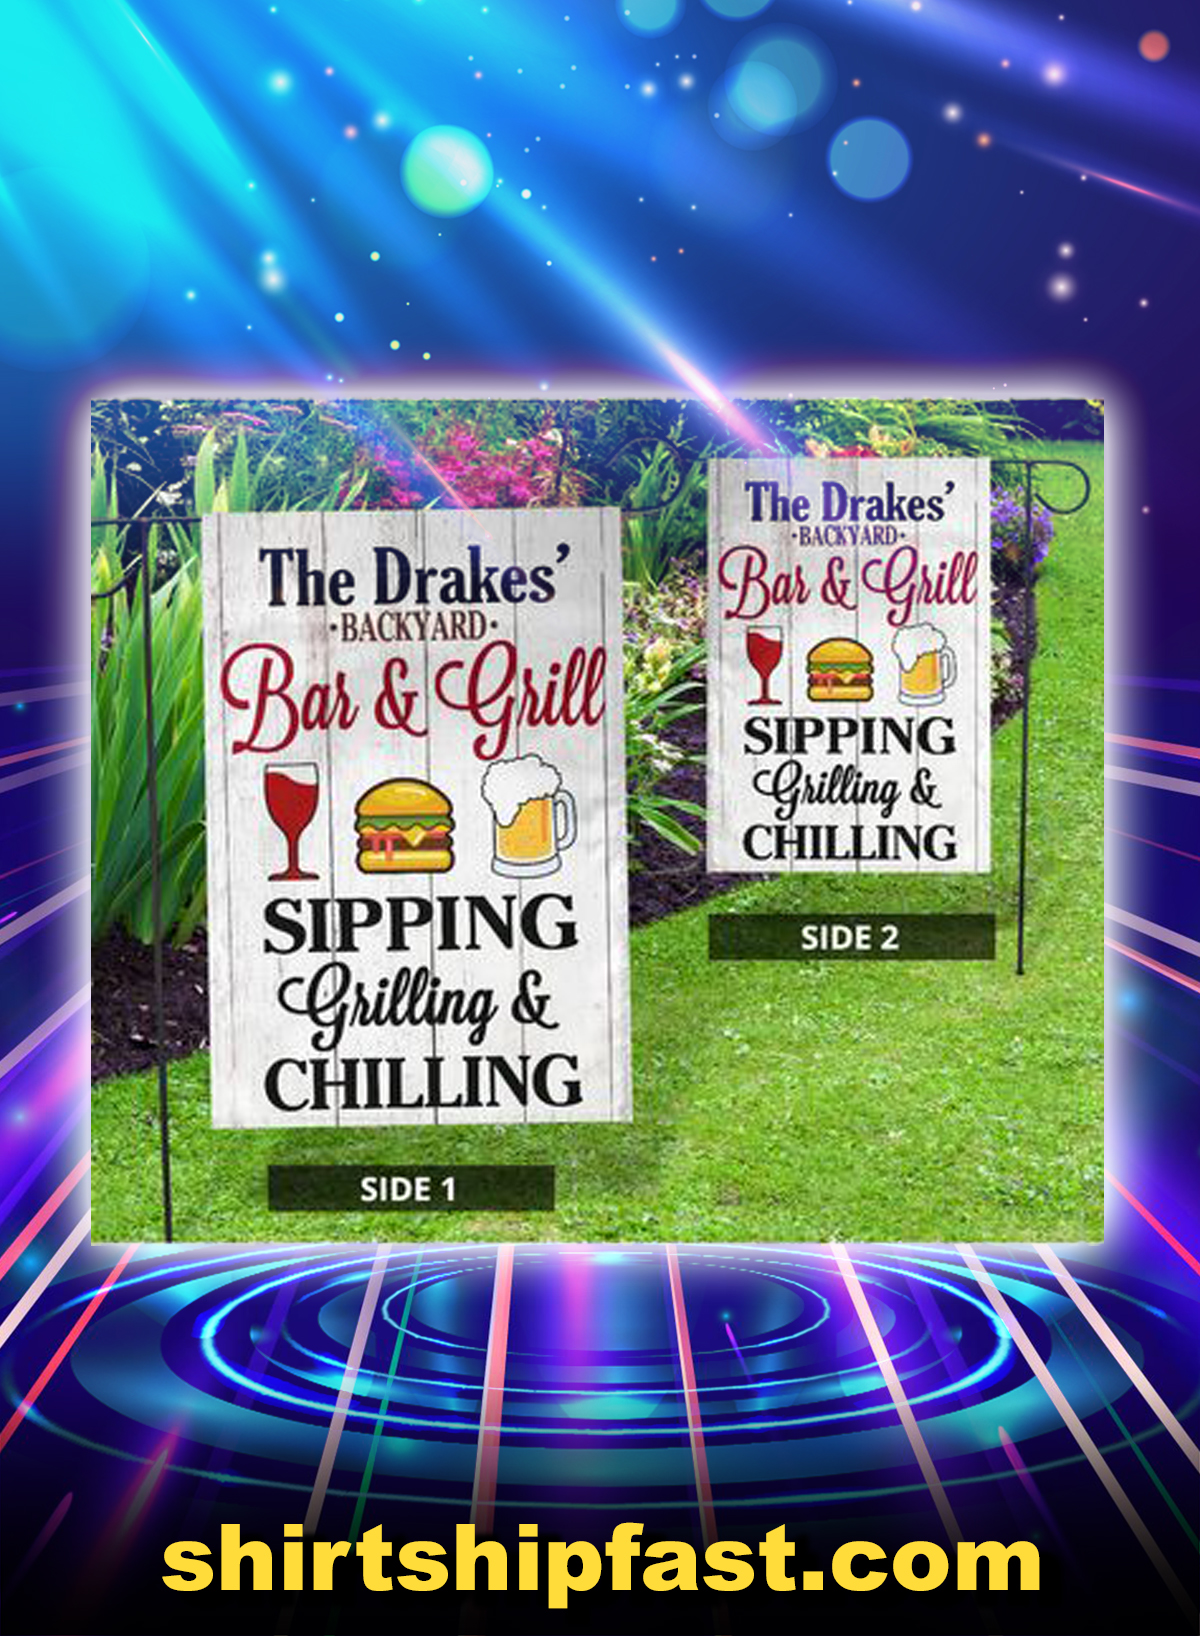 The Drakes' backyard bar and grill sipping grilling and chilling flag